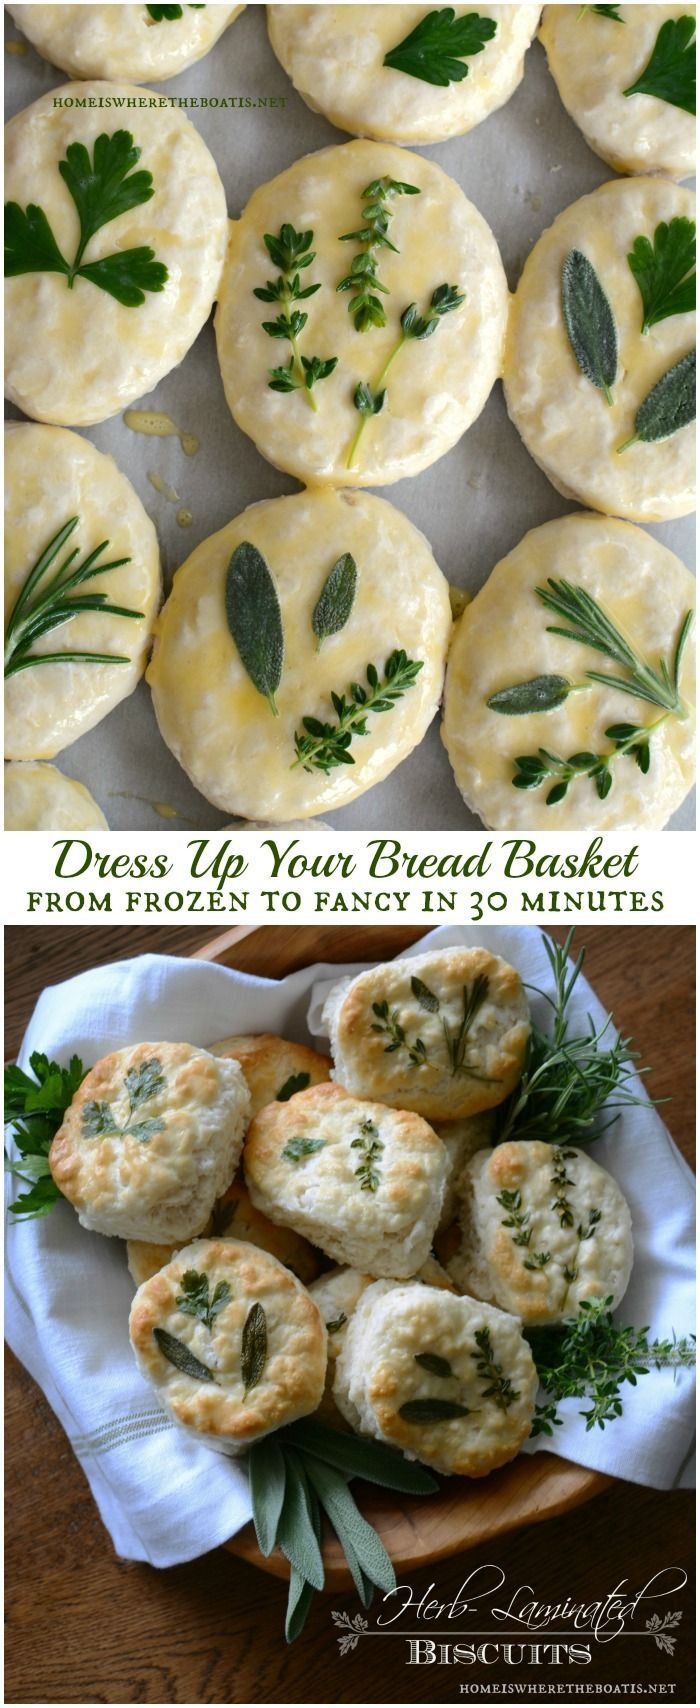 Herb-Laminated Biscuits, an easy technique to dress up your bread basket, from frozen to fancy in 30 minutes!